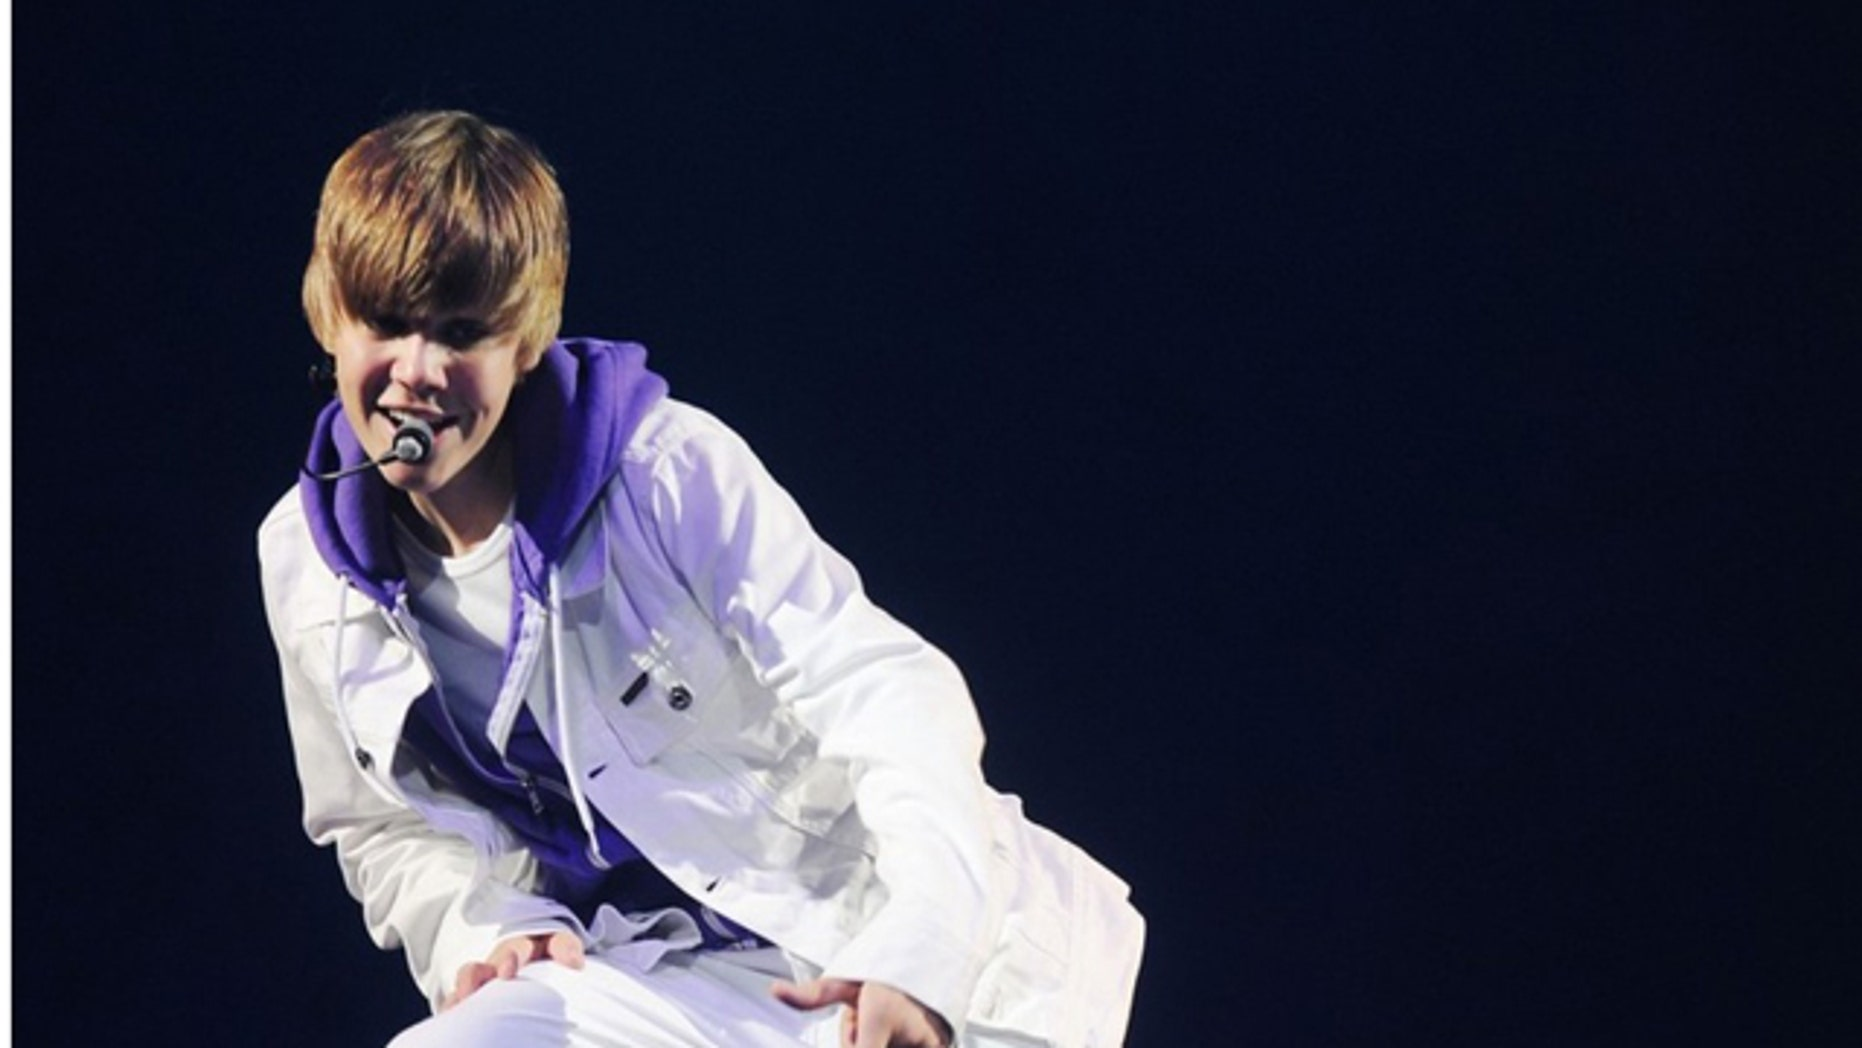 Fans of big acts like Justin Bieber should not expect to see drastic price reductions on tickets